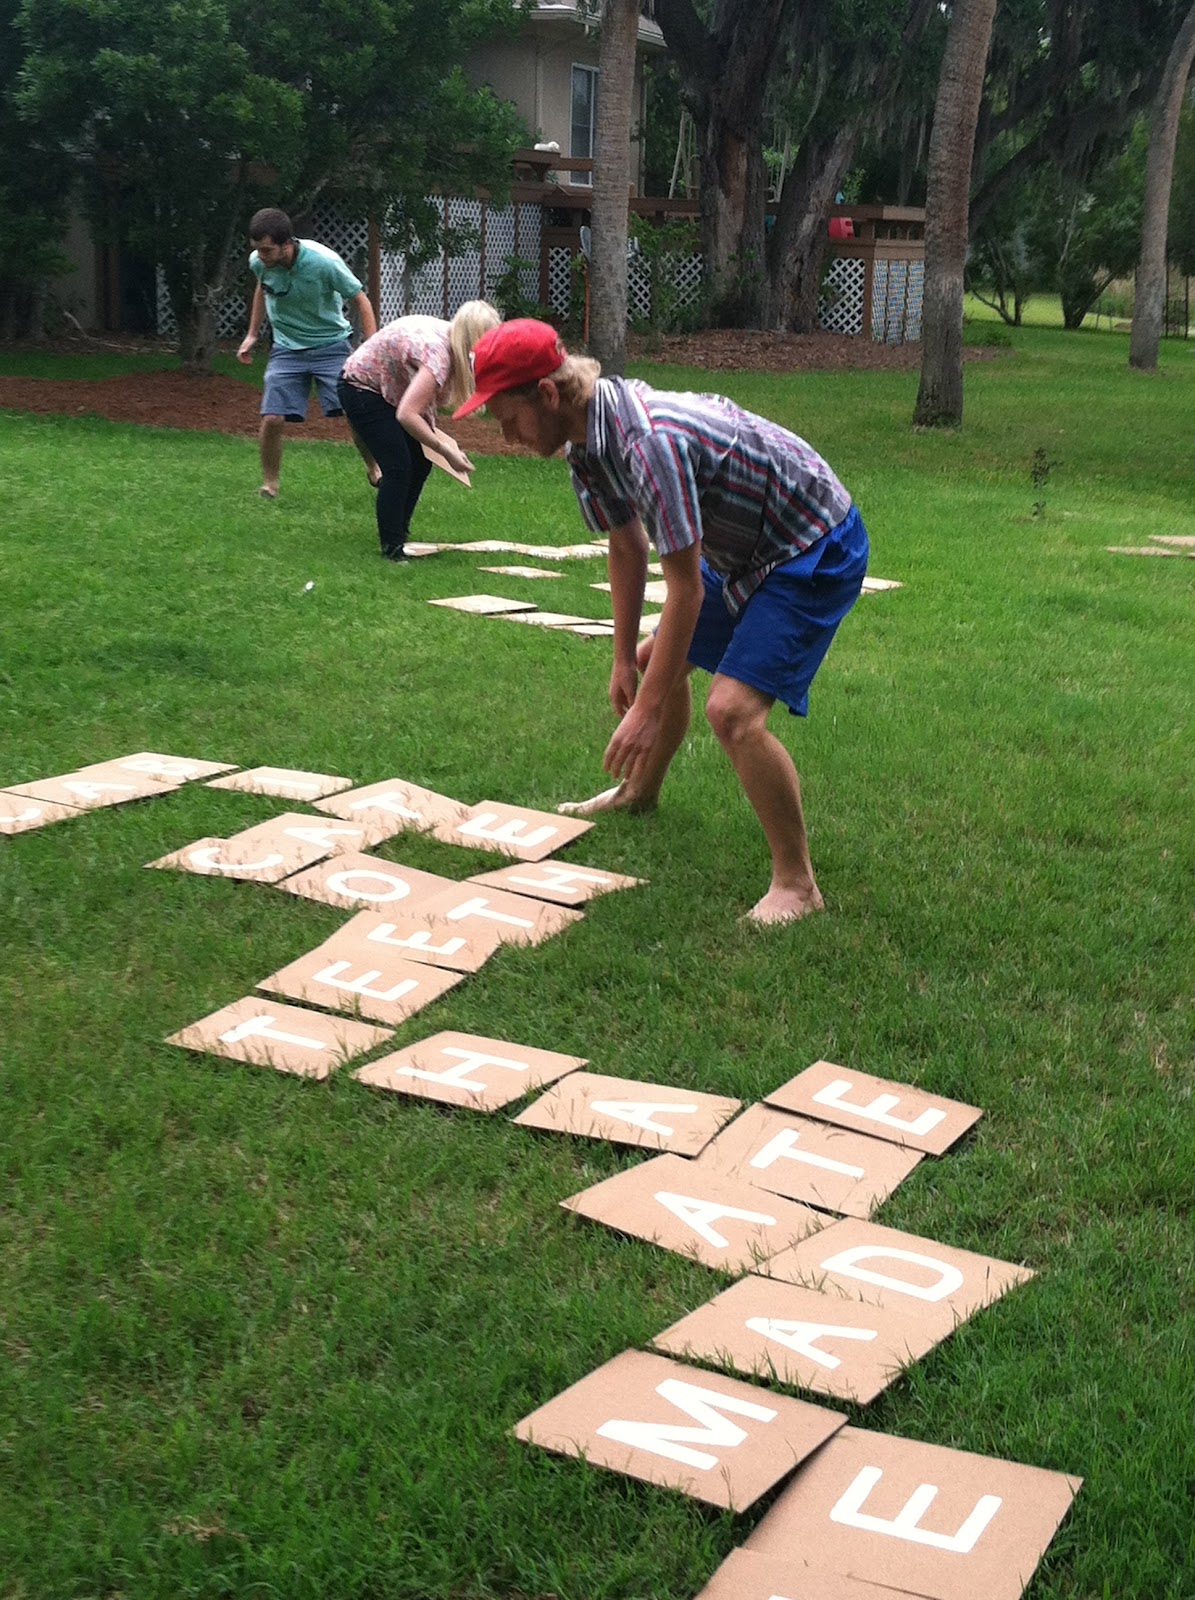 DIY Giant Backyard Scrabble